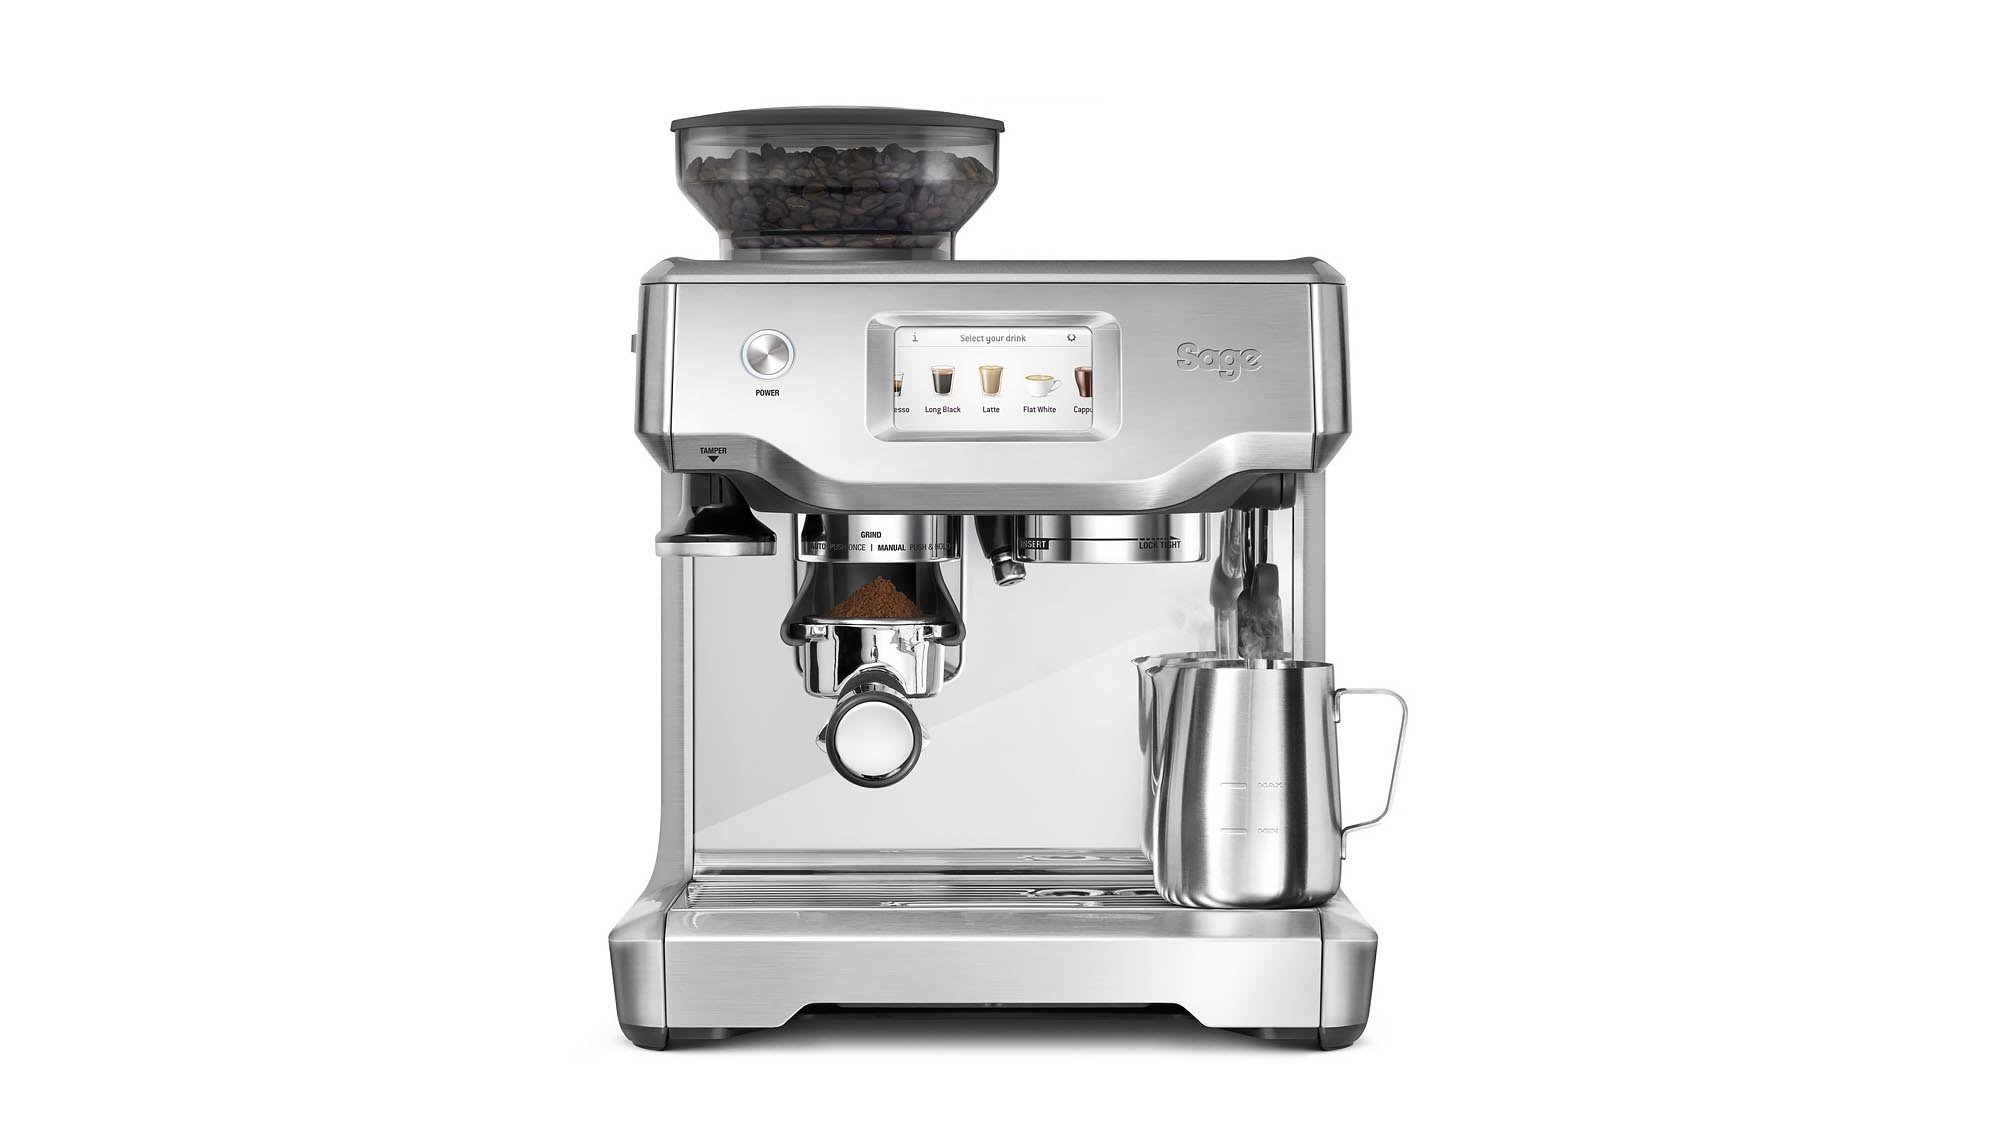 Dr4 Coffee Maker Schematic Diagram Wiring Espresso Machine Best 2018 How To Pick The Right For Flow